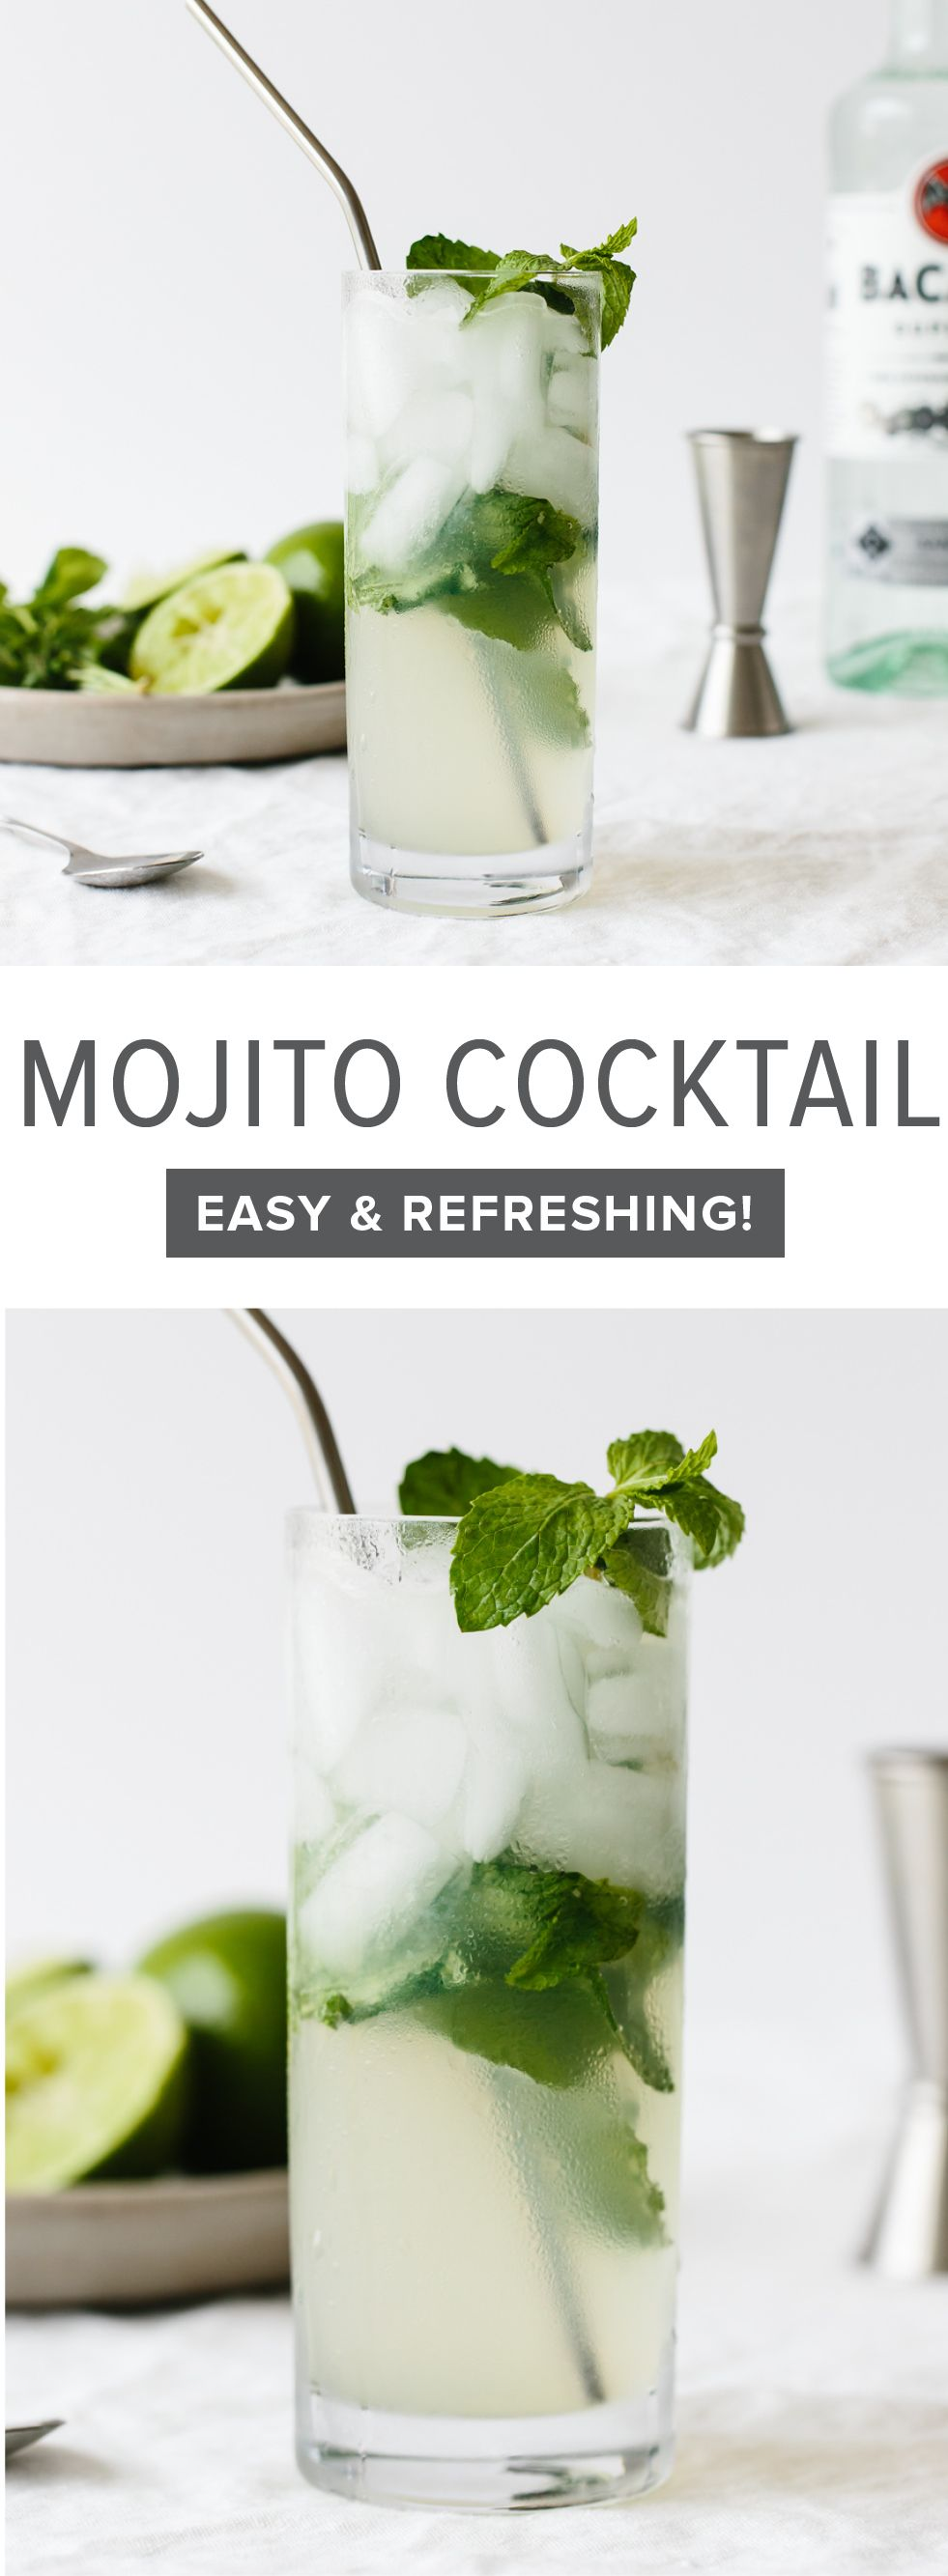 The Mojito (a Classic Cuban Cocktail) Is A Blend Of Rum